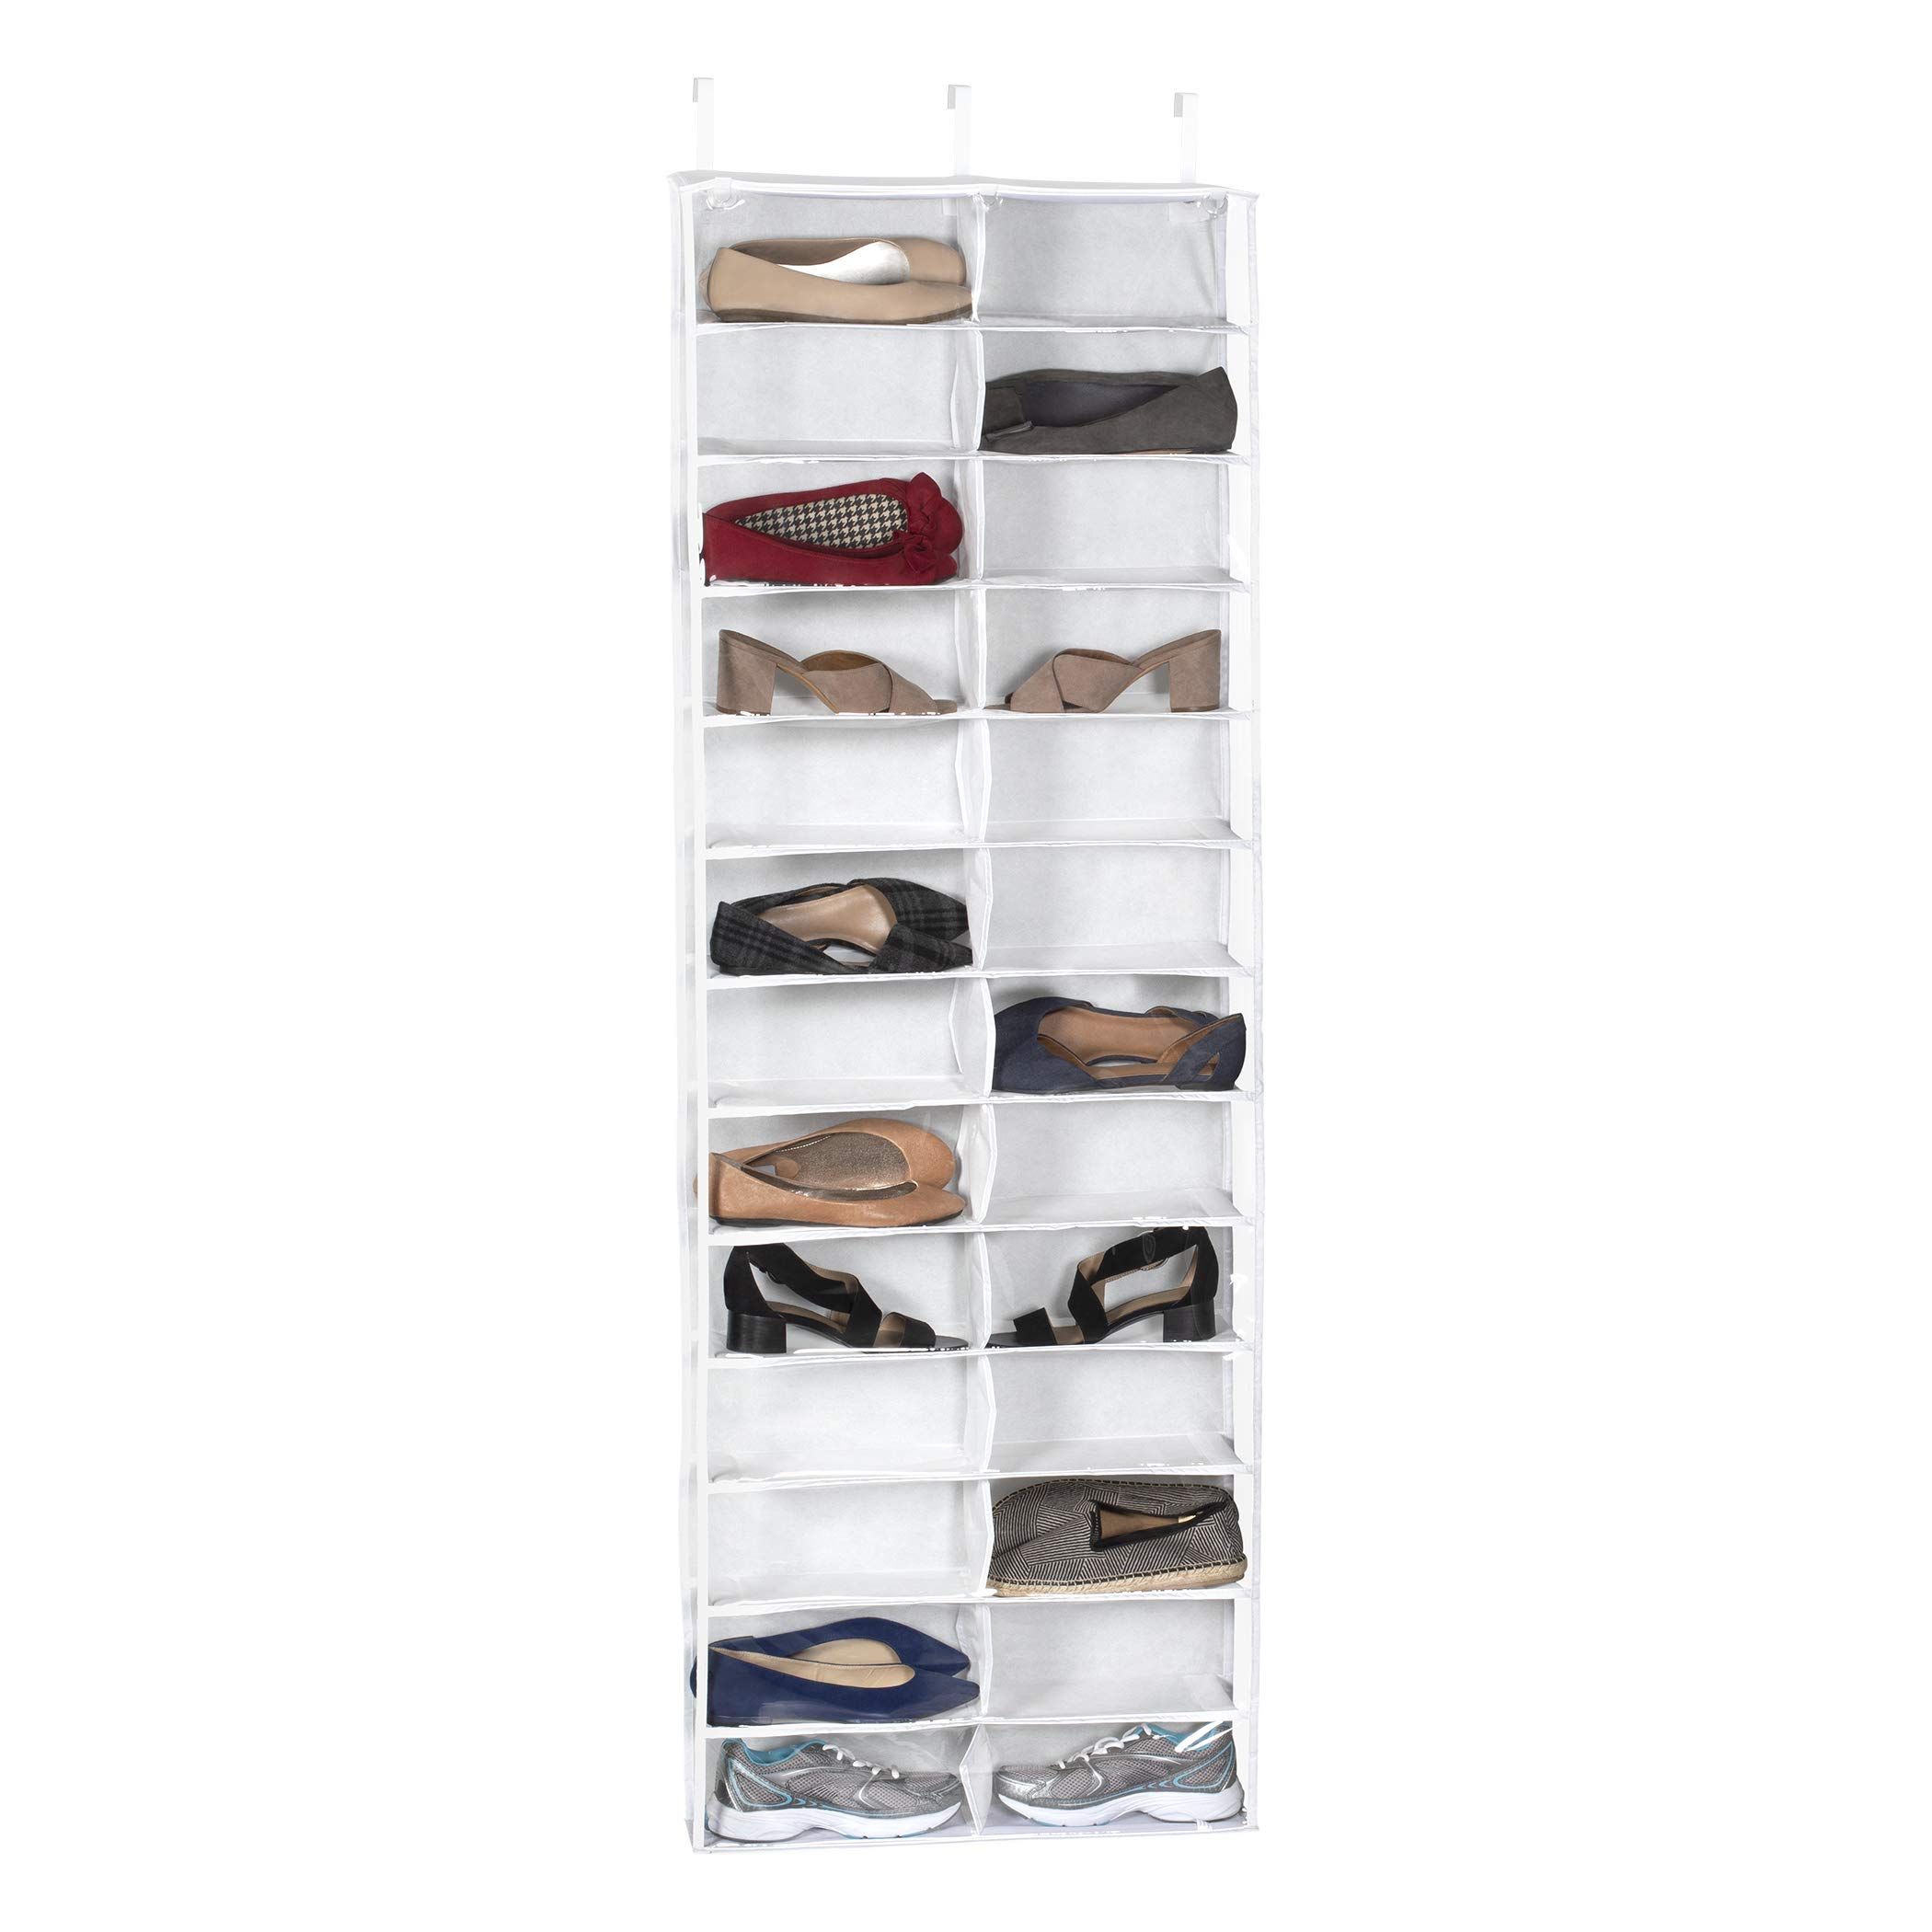 Richards Homewares Clearly Clear Purse 25526 Vinyl 26 Pocket Over The Door Shoe Organizer by Richards Homewares